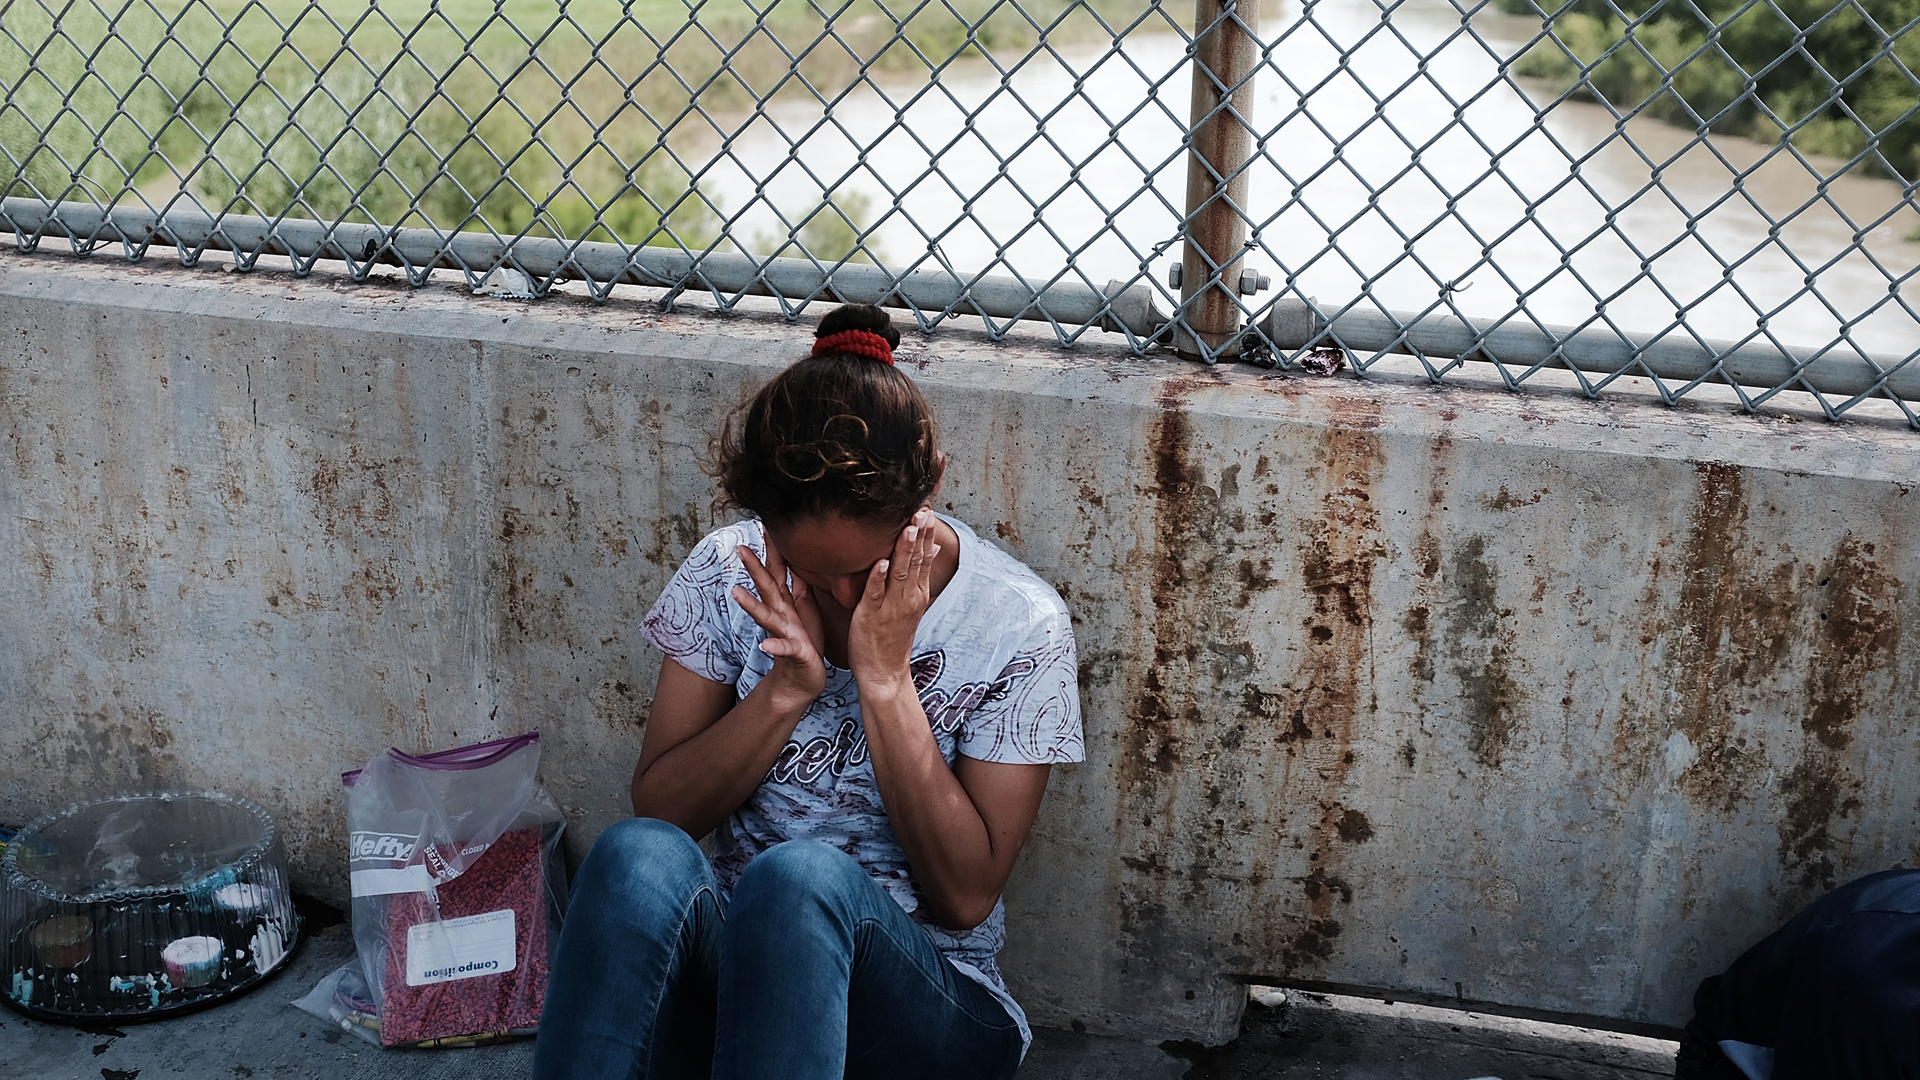 A Honduran woman, fleeing poverty and violence in her home country, waits along the border bridge after being denied entry into the U.S. from Mexico on June 25, 2018, in Brownsville, Texas. (Credit: Spencer Platt/Getty Images)